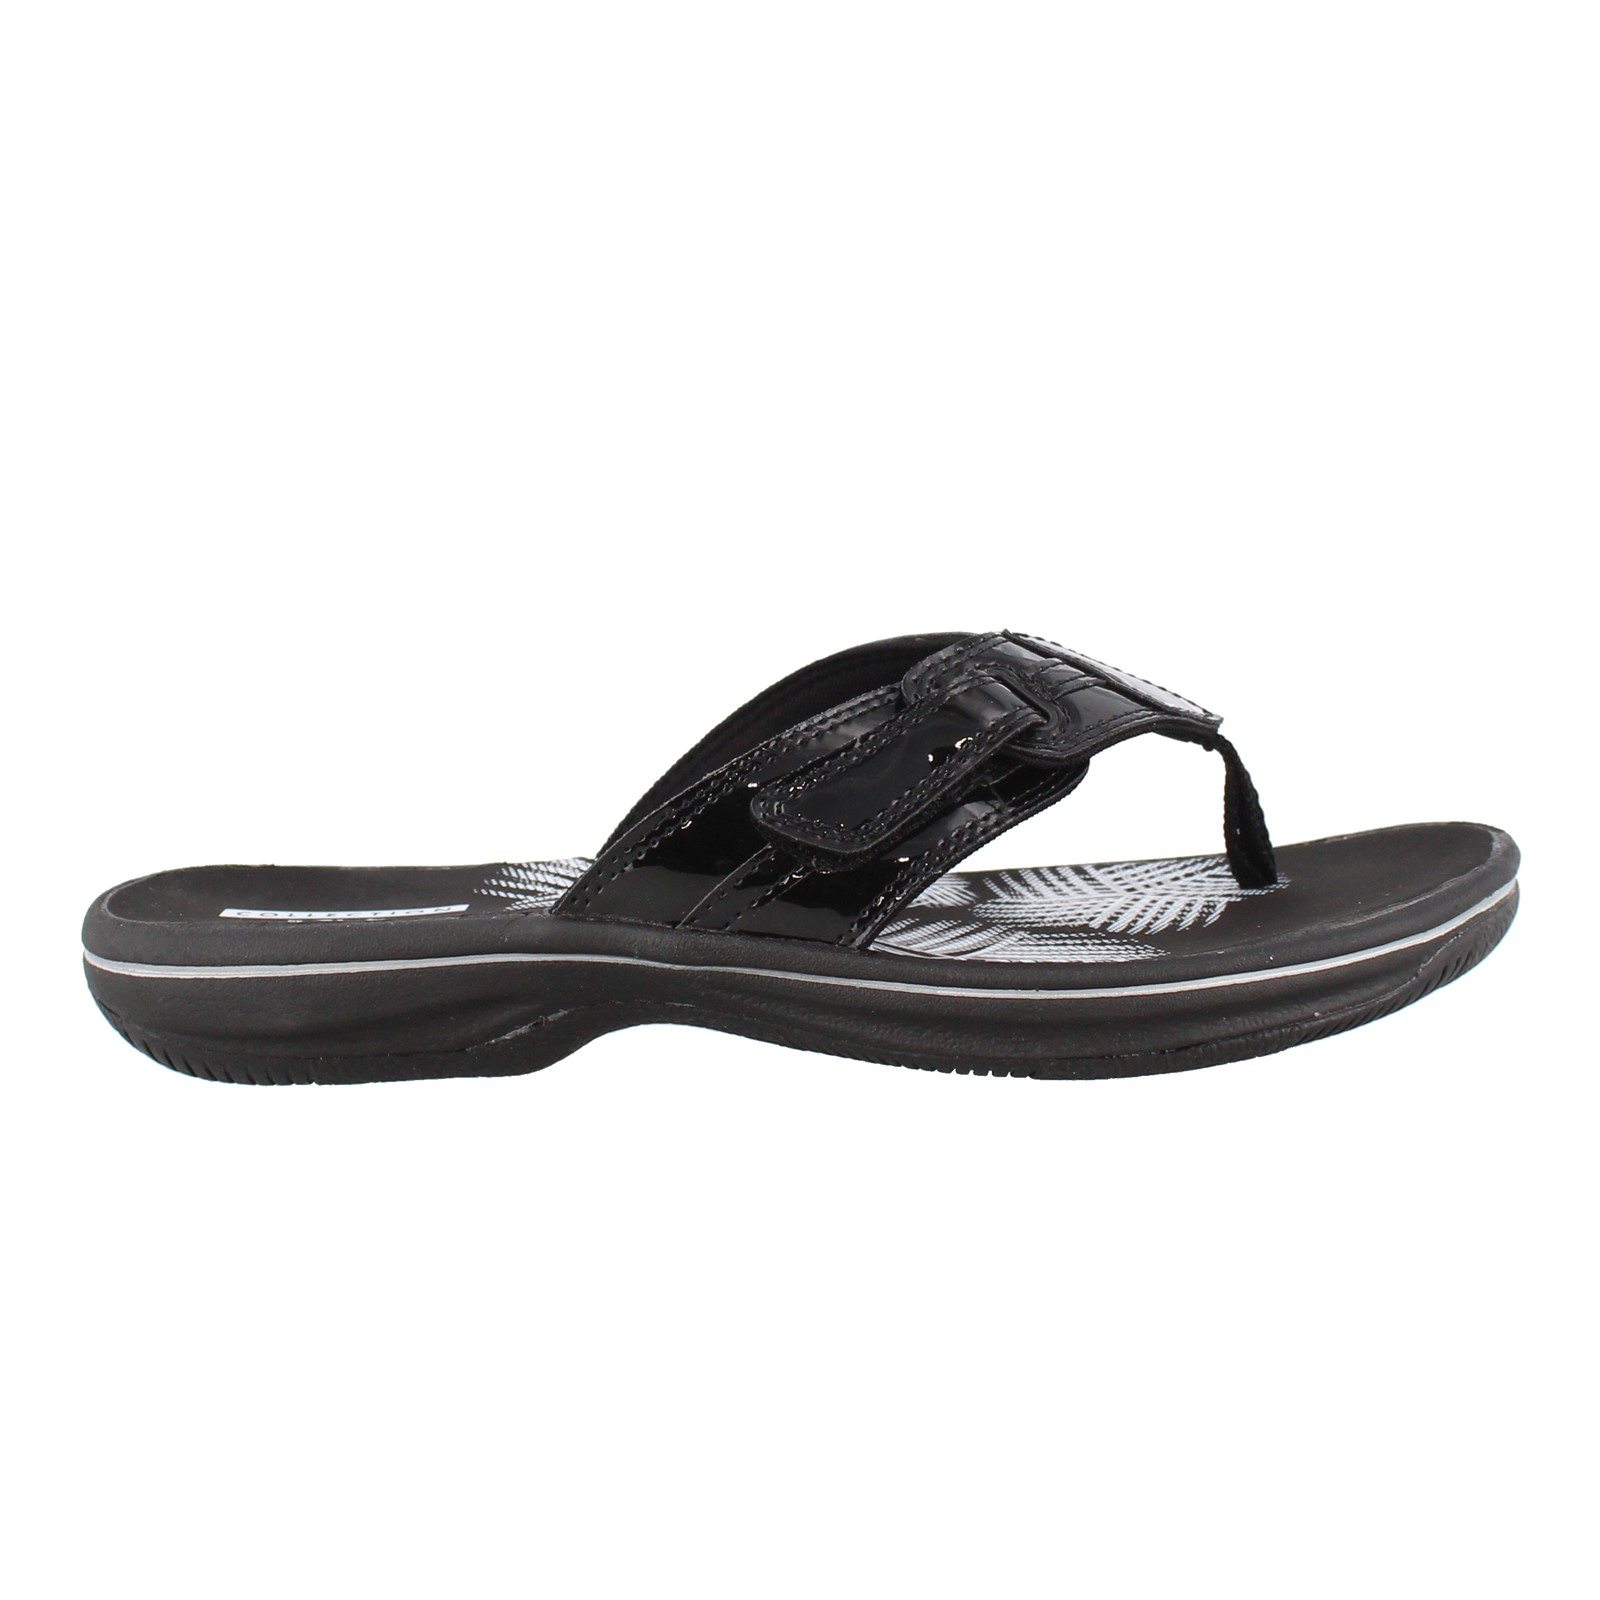 Women's Clarks, Brinkley Bree Thong Sandals